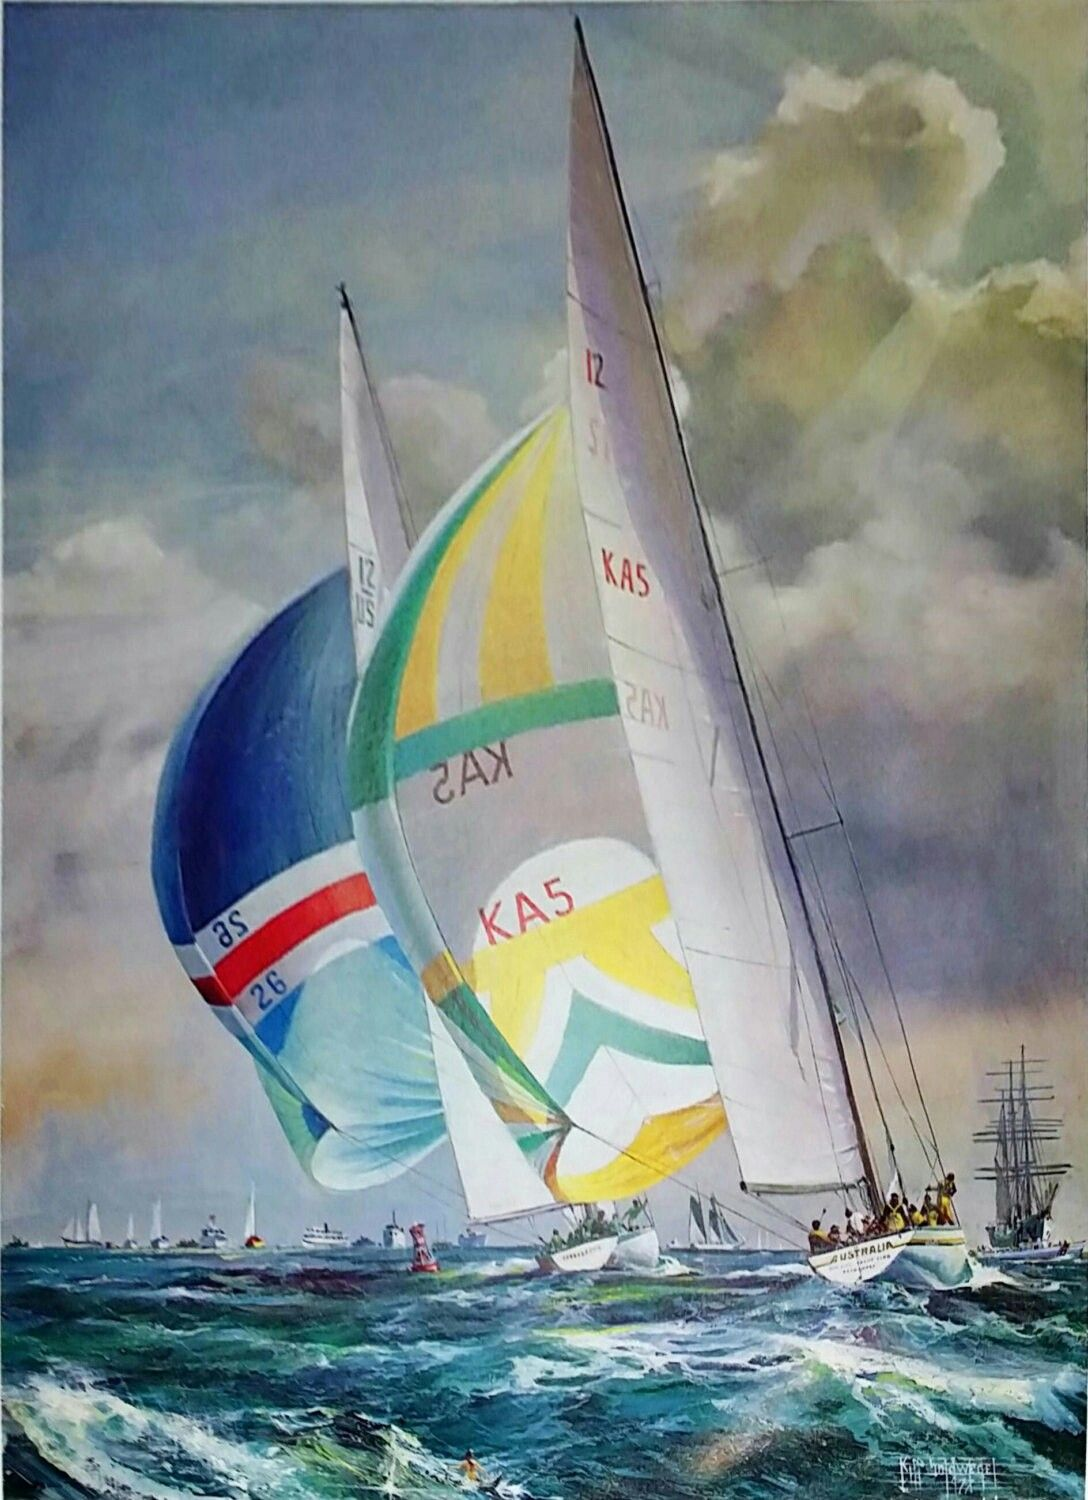 Excited to share the latest addition to my #etsy shop: Kipp Soldwedel Courageous Leading Australia 1977 Original Lithograph #art #print #lithograph #christmas #vintageprint #fineart #kippsoldwedel http://etsy.me/2CHQnyE